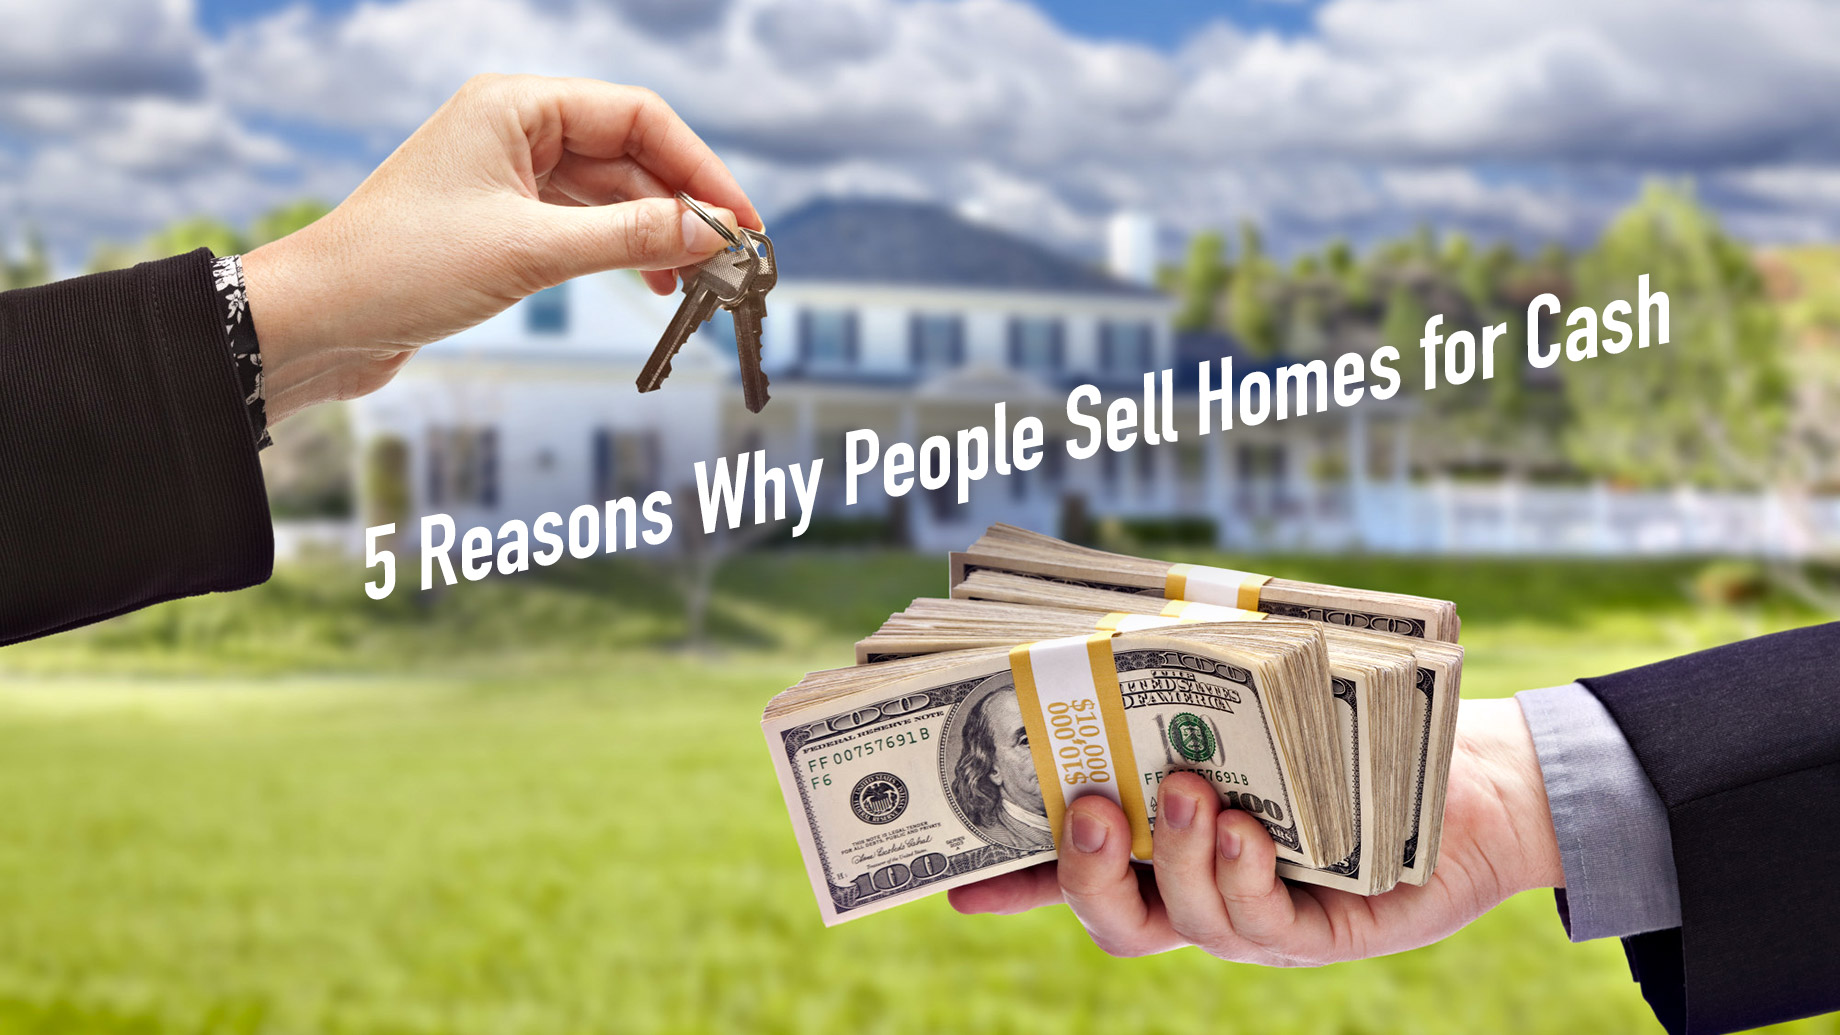 5 Reasons Why People Sell Homes for Cash